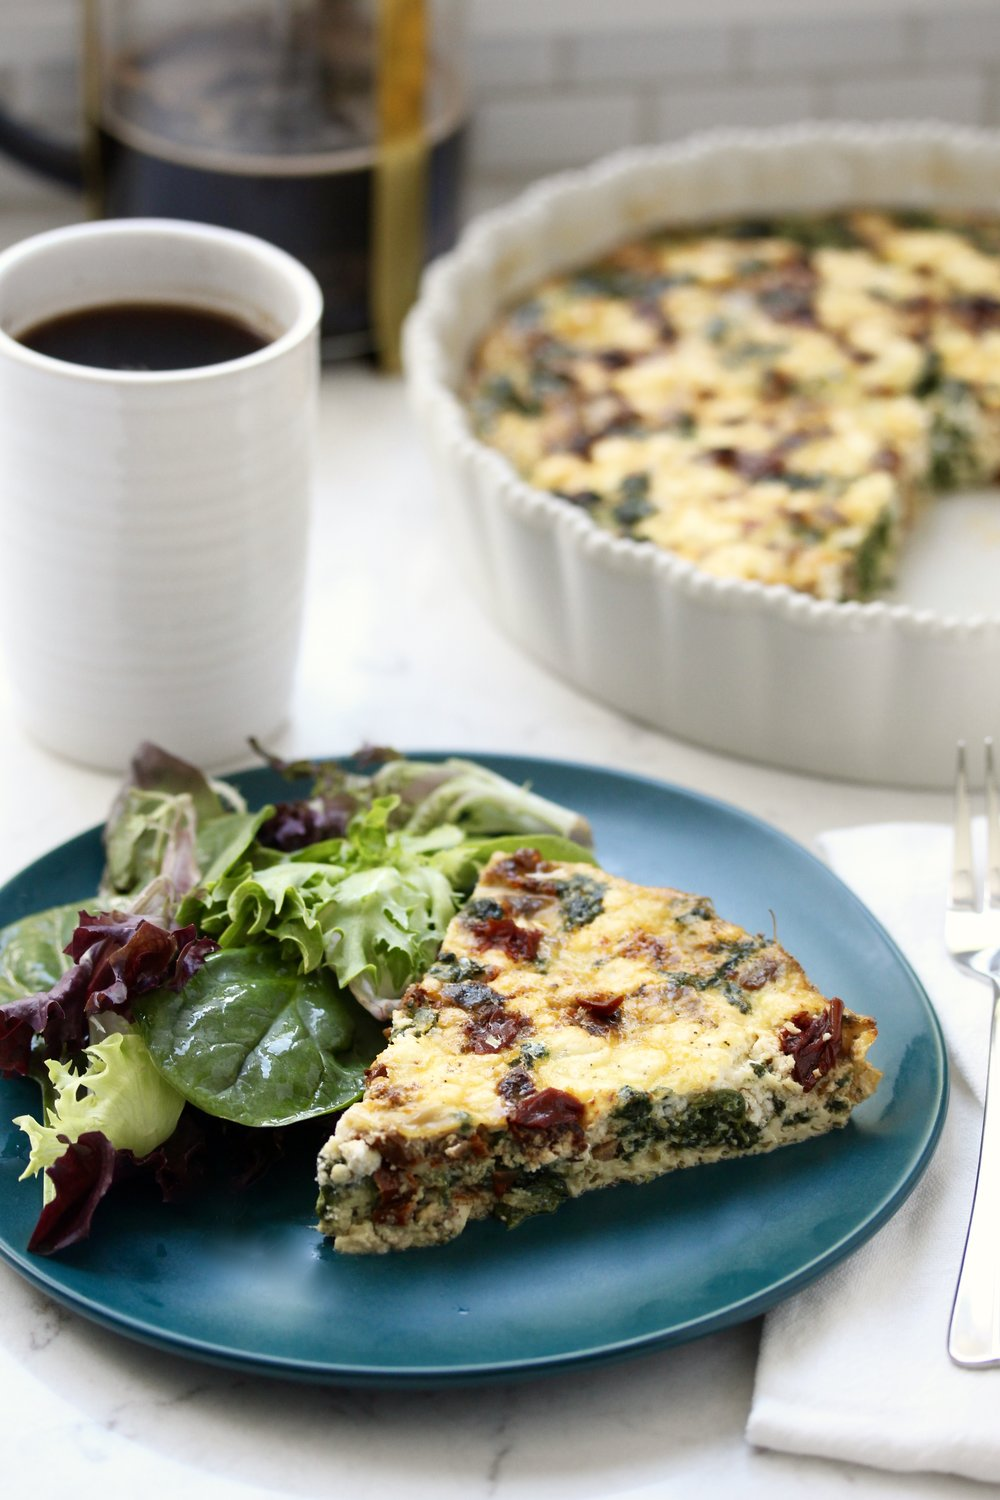 Sun-dried Tomato Spinach Quiche with Goat Cheese